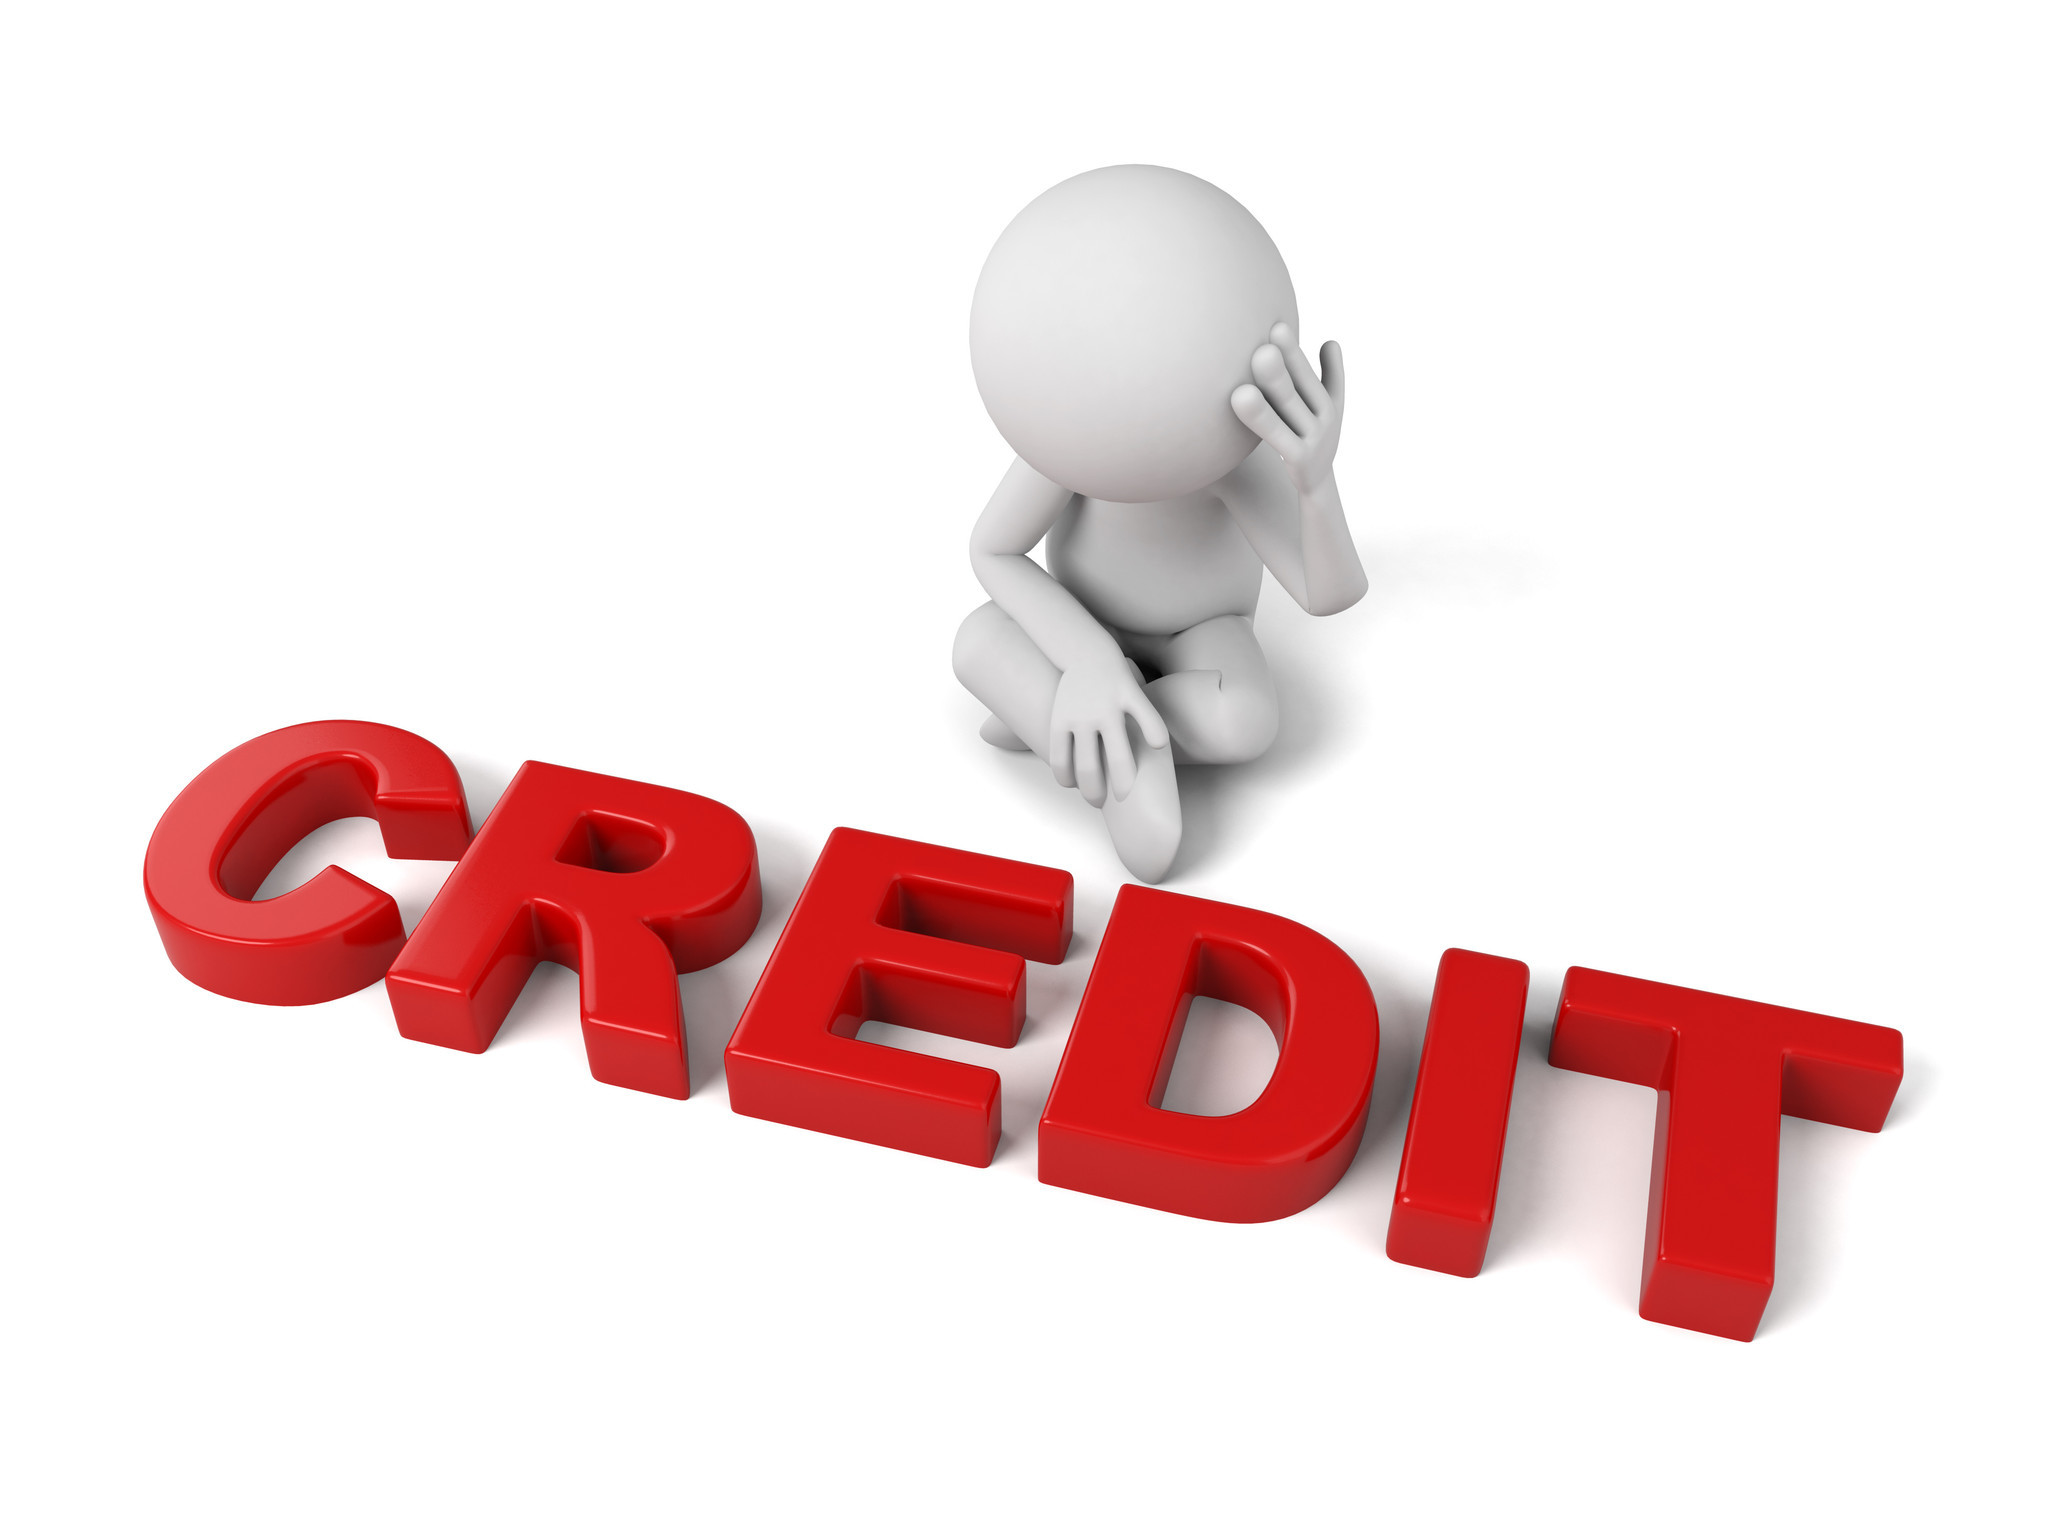 How have you learned to manage your money and credit responsibly?